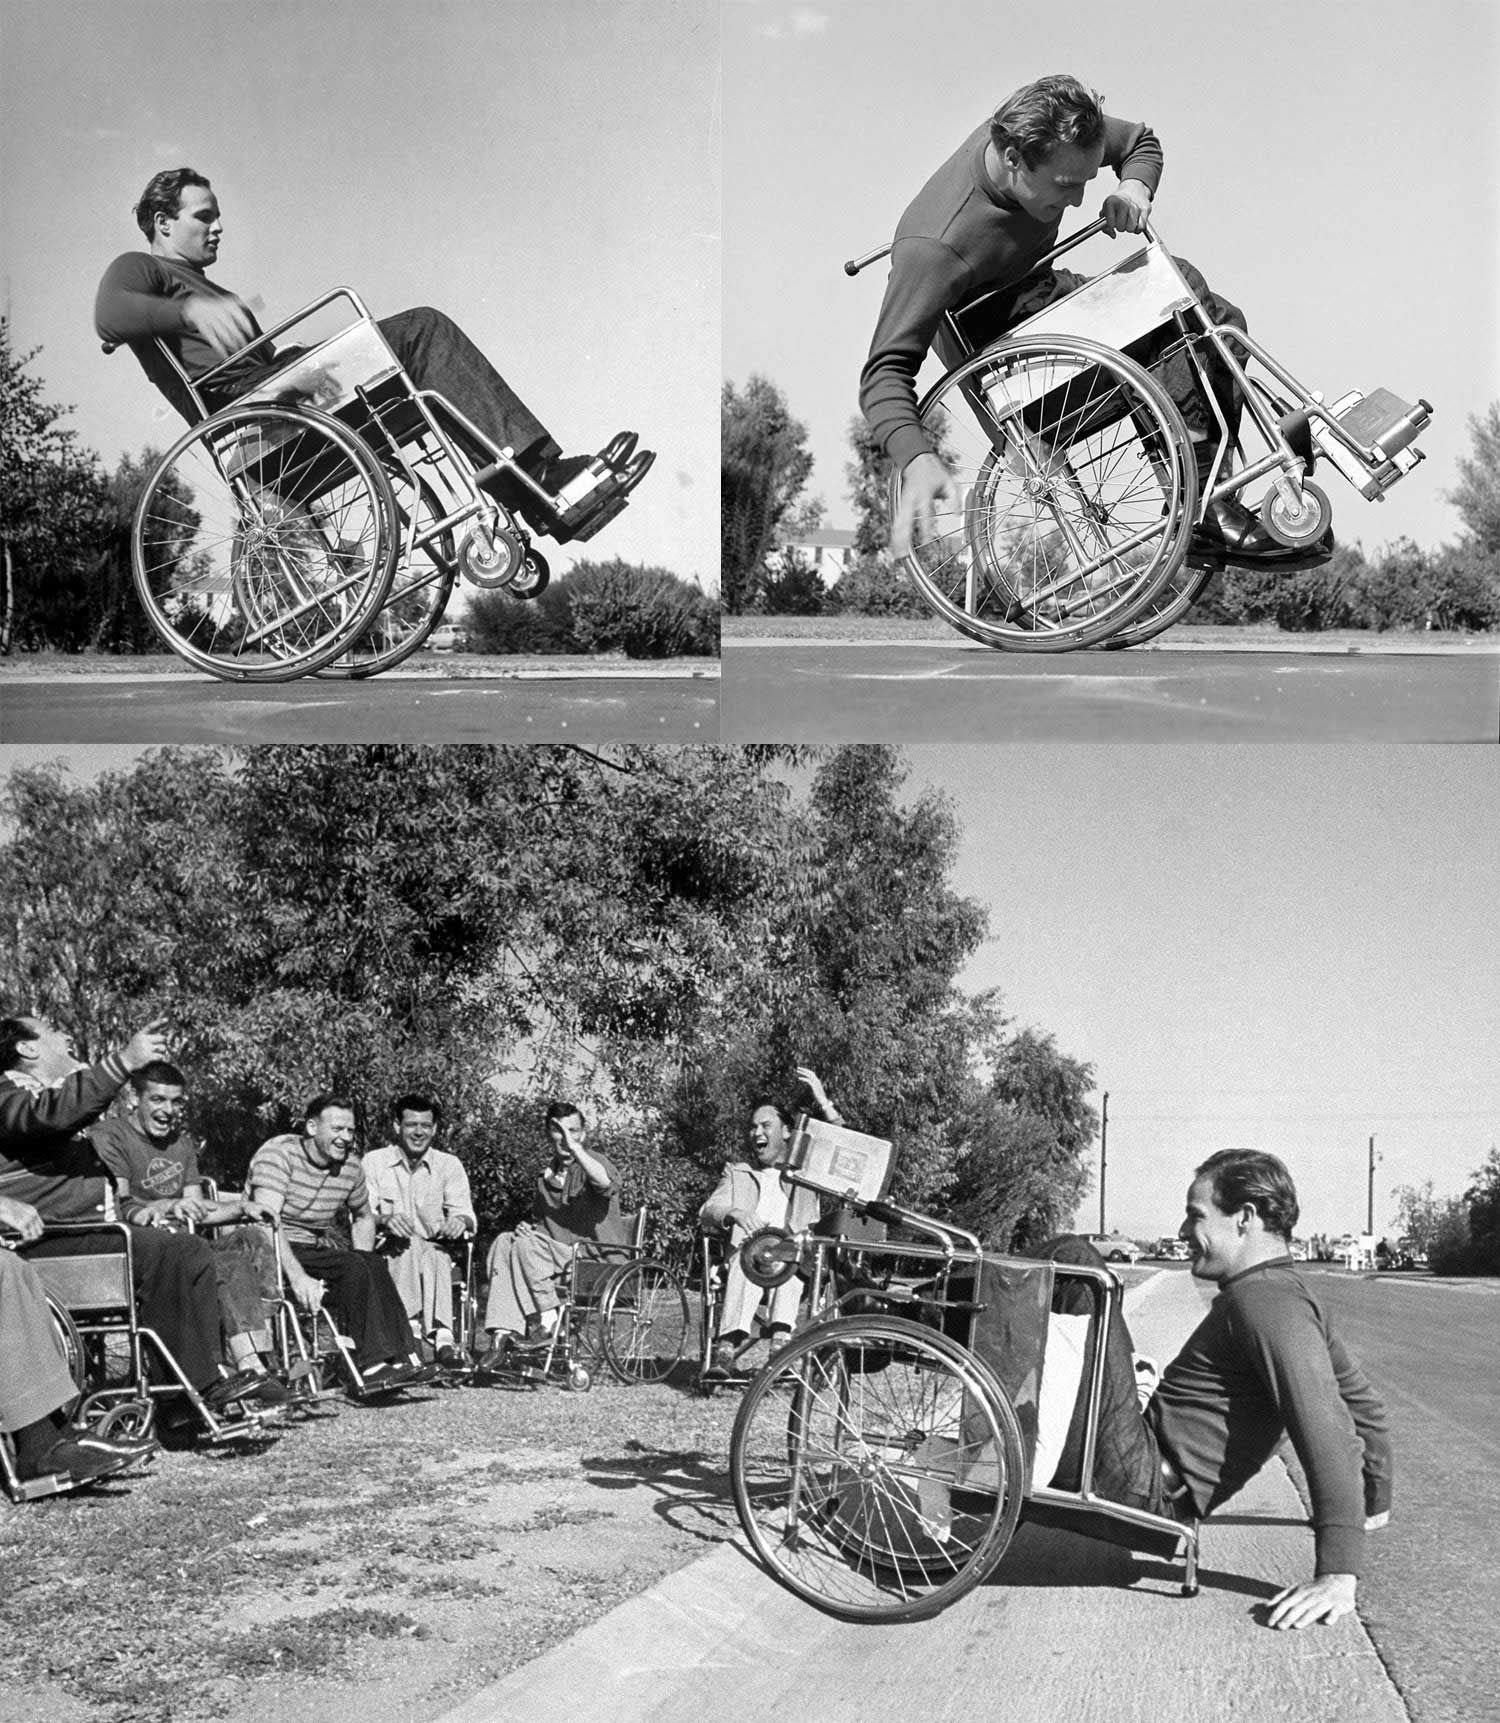 Marlon Brando practicing his wheelchair technique for his role as a disabled veteran in The Men, 1950, Fred Zinnemann.